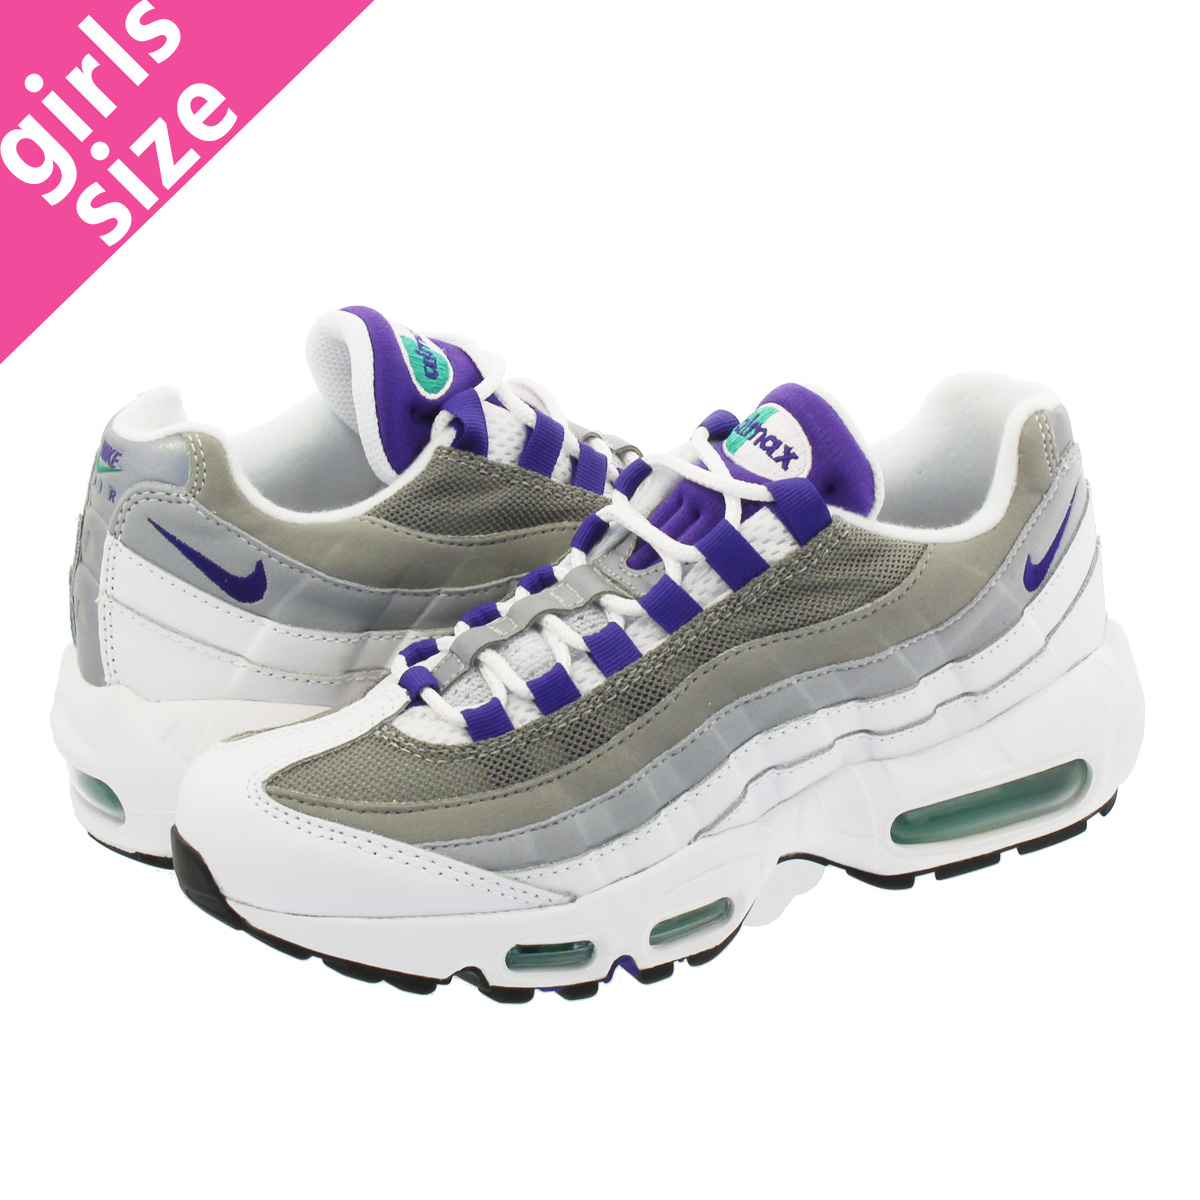 promo code 45d65 f2d7d ... norway nike wmns air max 95 nike women air max 95 white court purple  emerald green